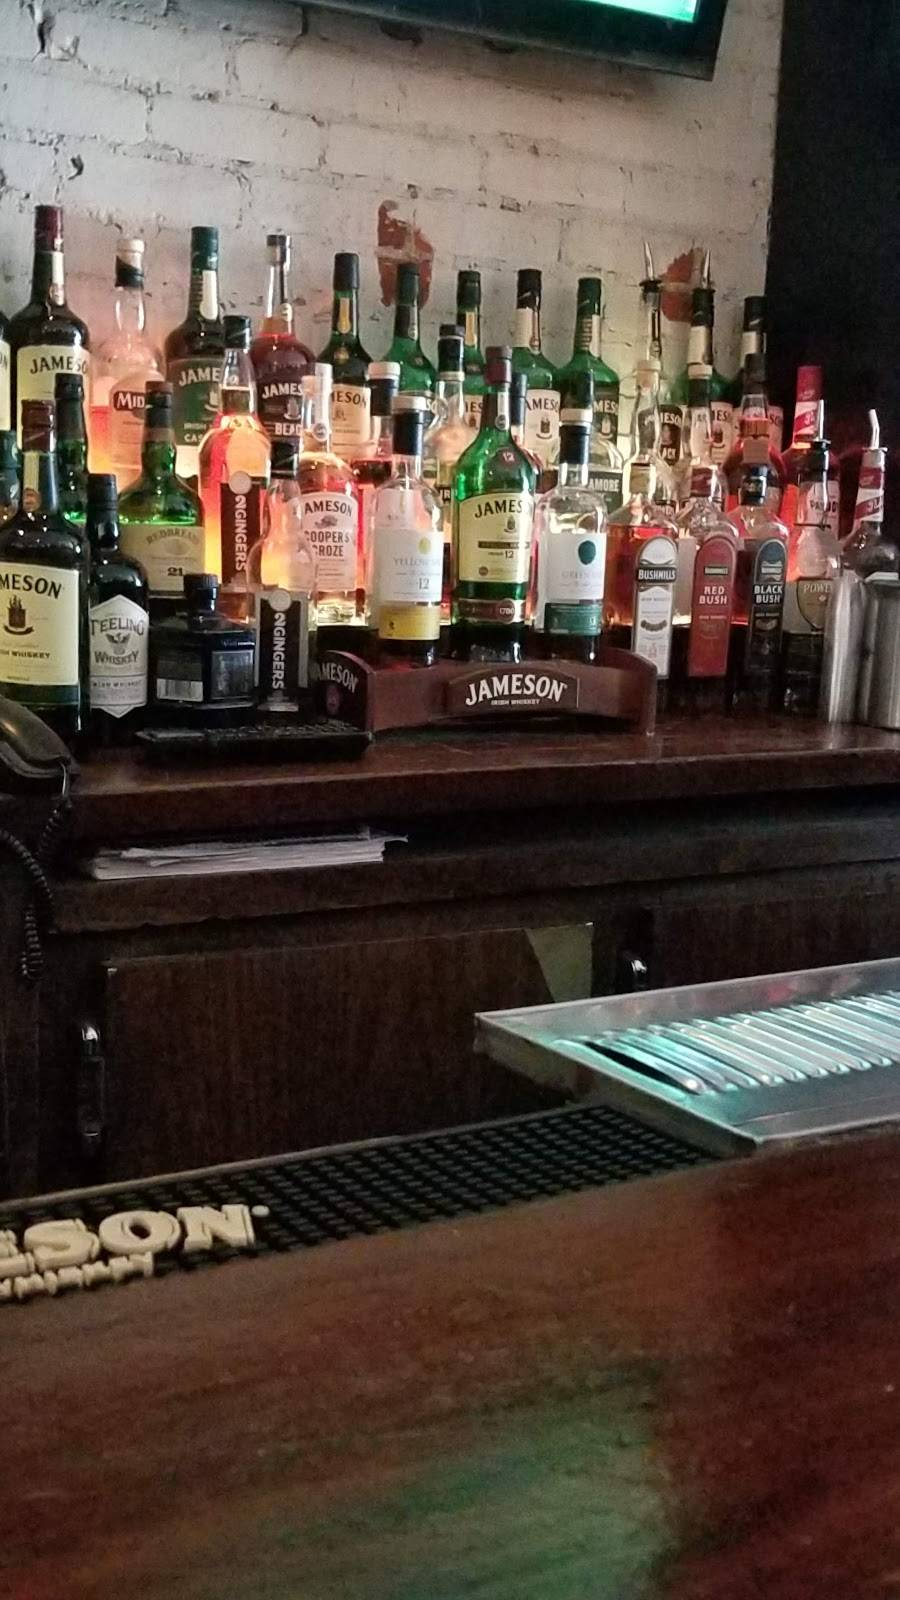 Jamesons | restaurant | 975 2nd Ave, New York, NY 10022, USA | 2125880146 OR +1 212-588-0146